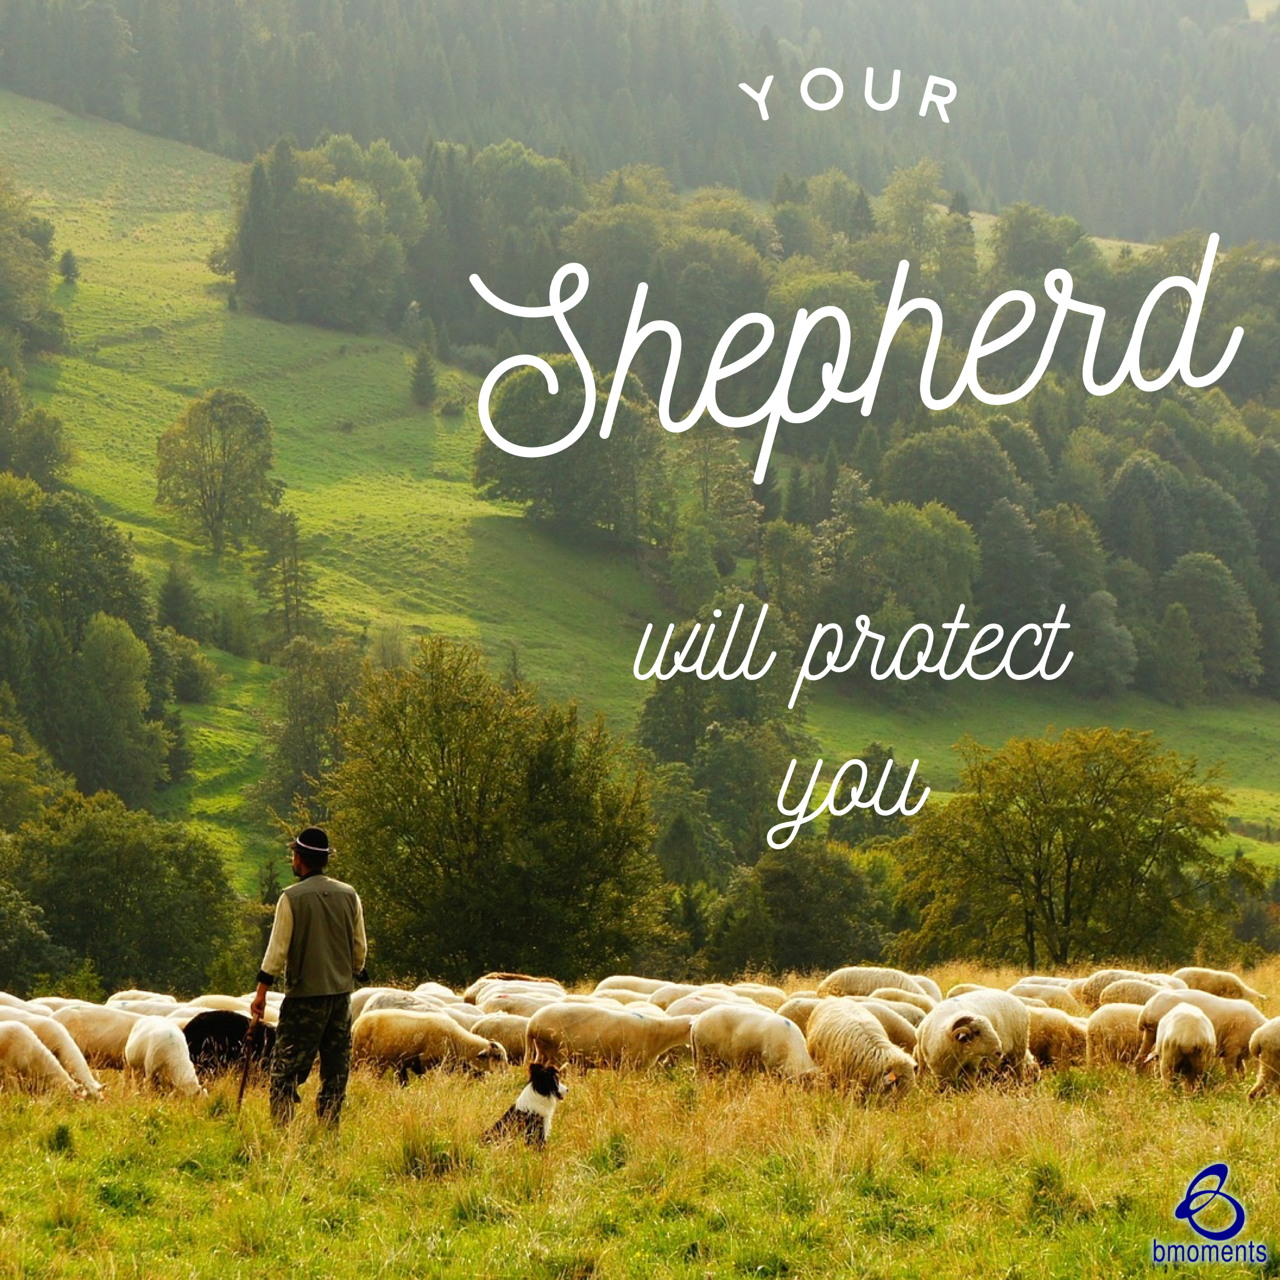 Your Shepherd Will Protect You from Harm